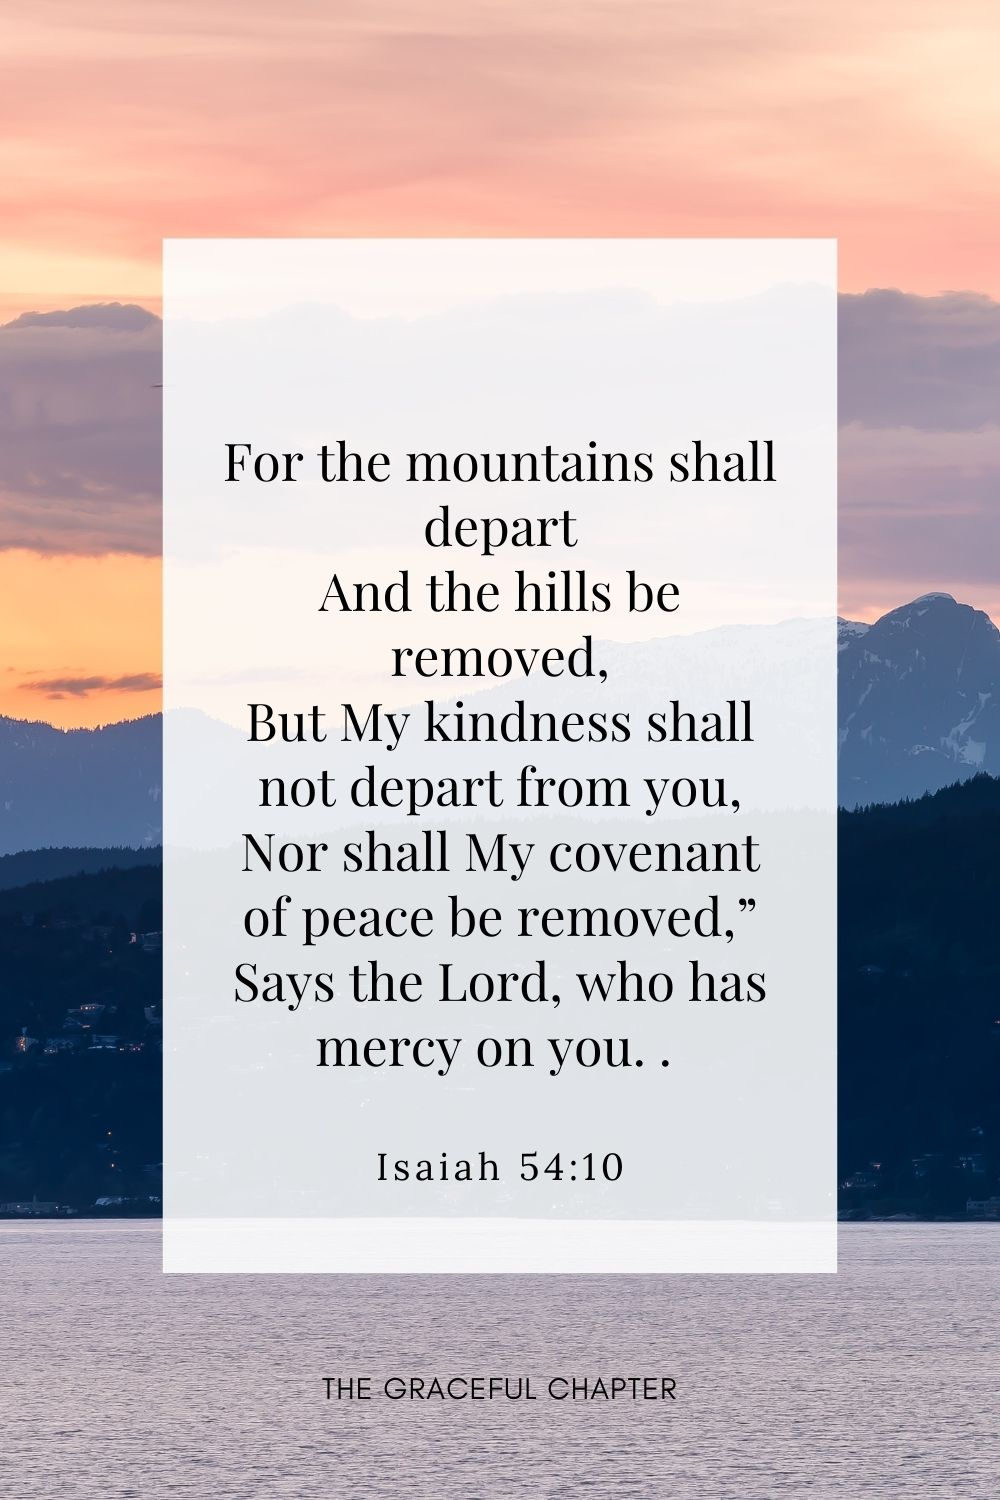 """For the mountains shall depart And the hills be removed, But My kindness shall not depart from you, Nor shall My covenant of peace be removed,"""" Says the Lord, who has mercy on you. Isaiah 54:10"""